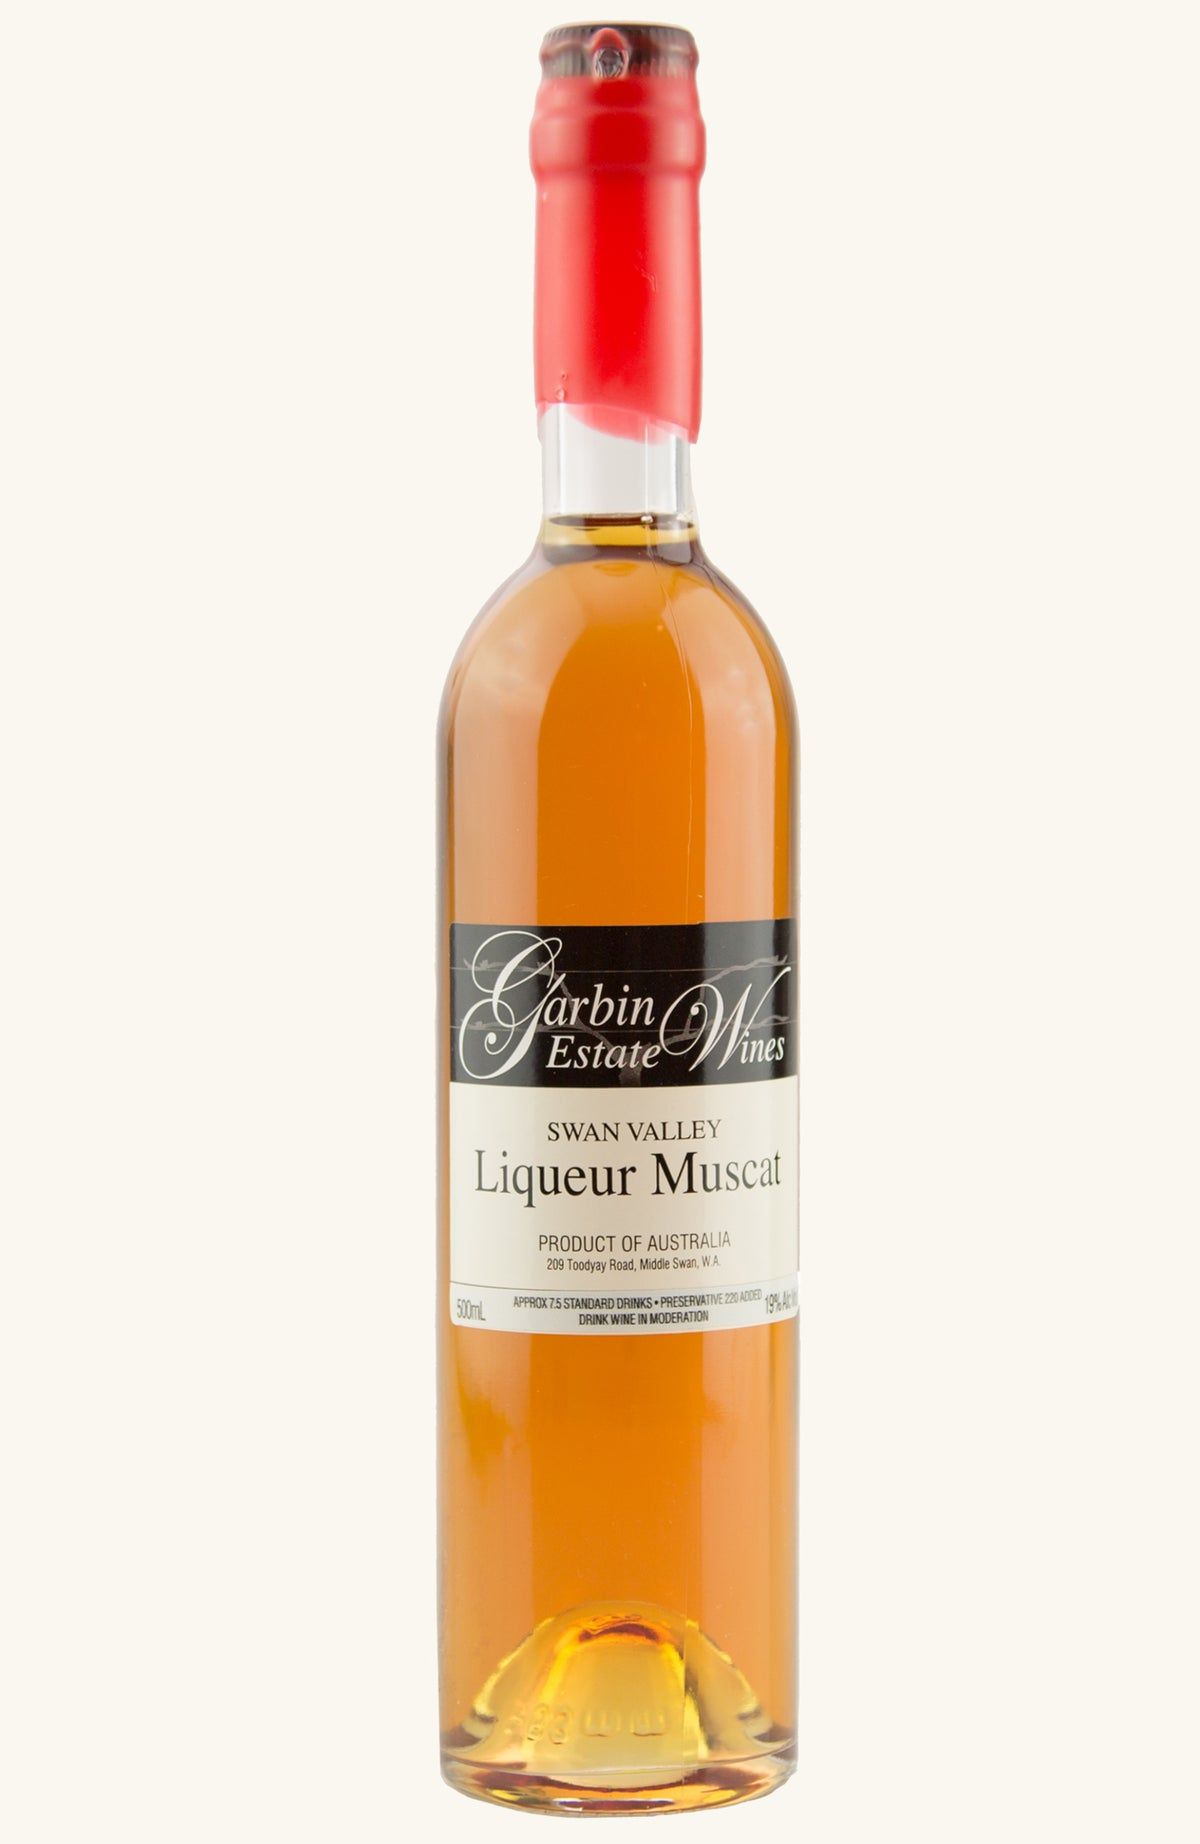 Garbin Estate Wines Liqueur Muscat